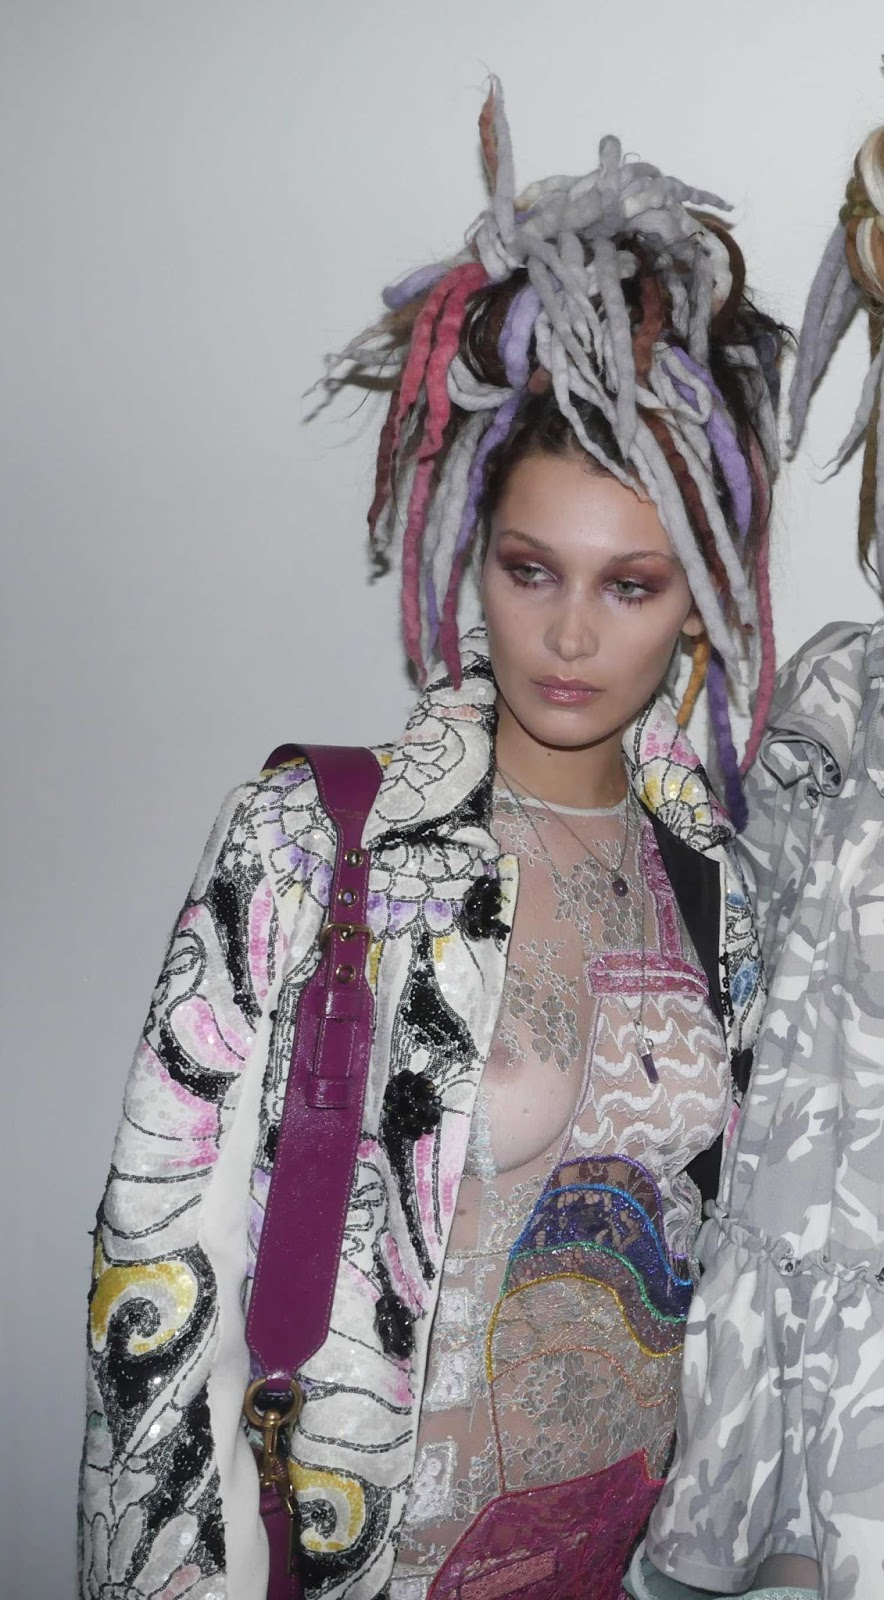 Bella Hadid goes sheer for the Marc Jacobs New York Fashion Week Runway